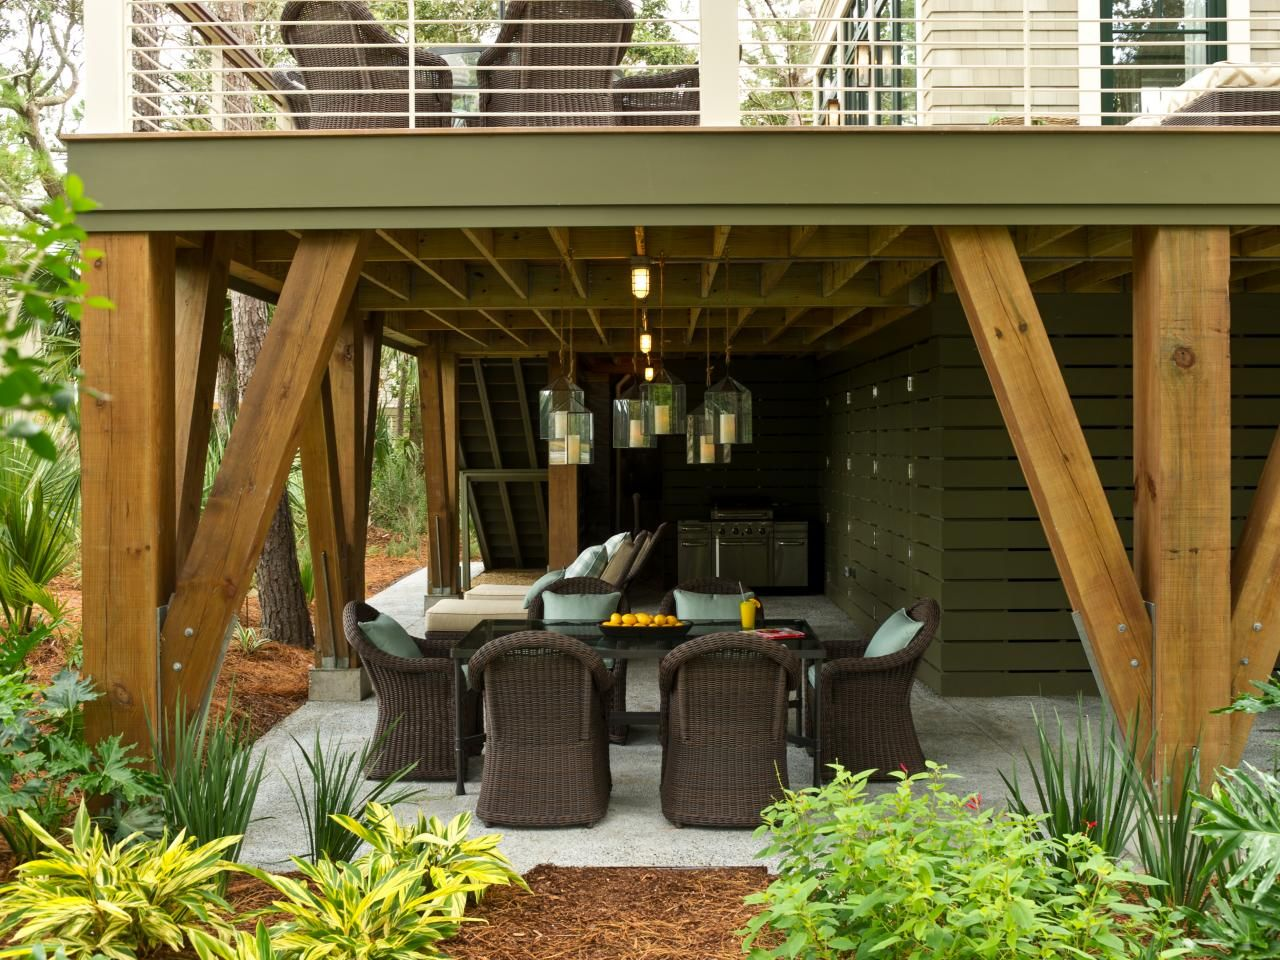 patio ideas under deck under deck patio ideas under deck ceilings retractable awnings opening roof designs - Patio Ideas Under Deck